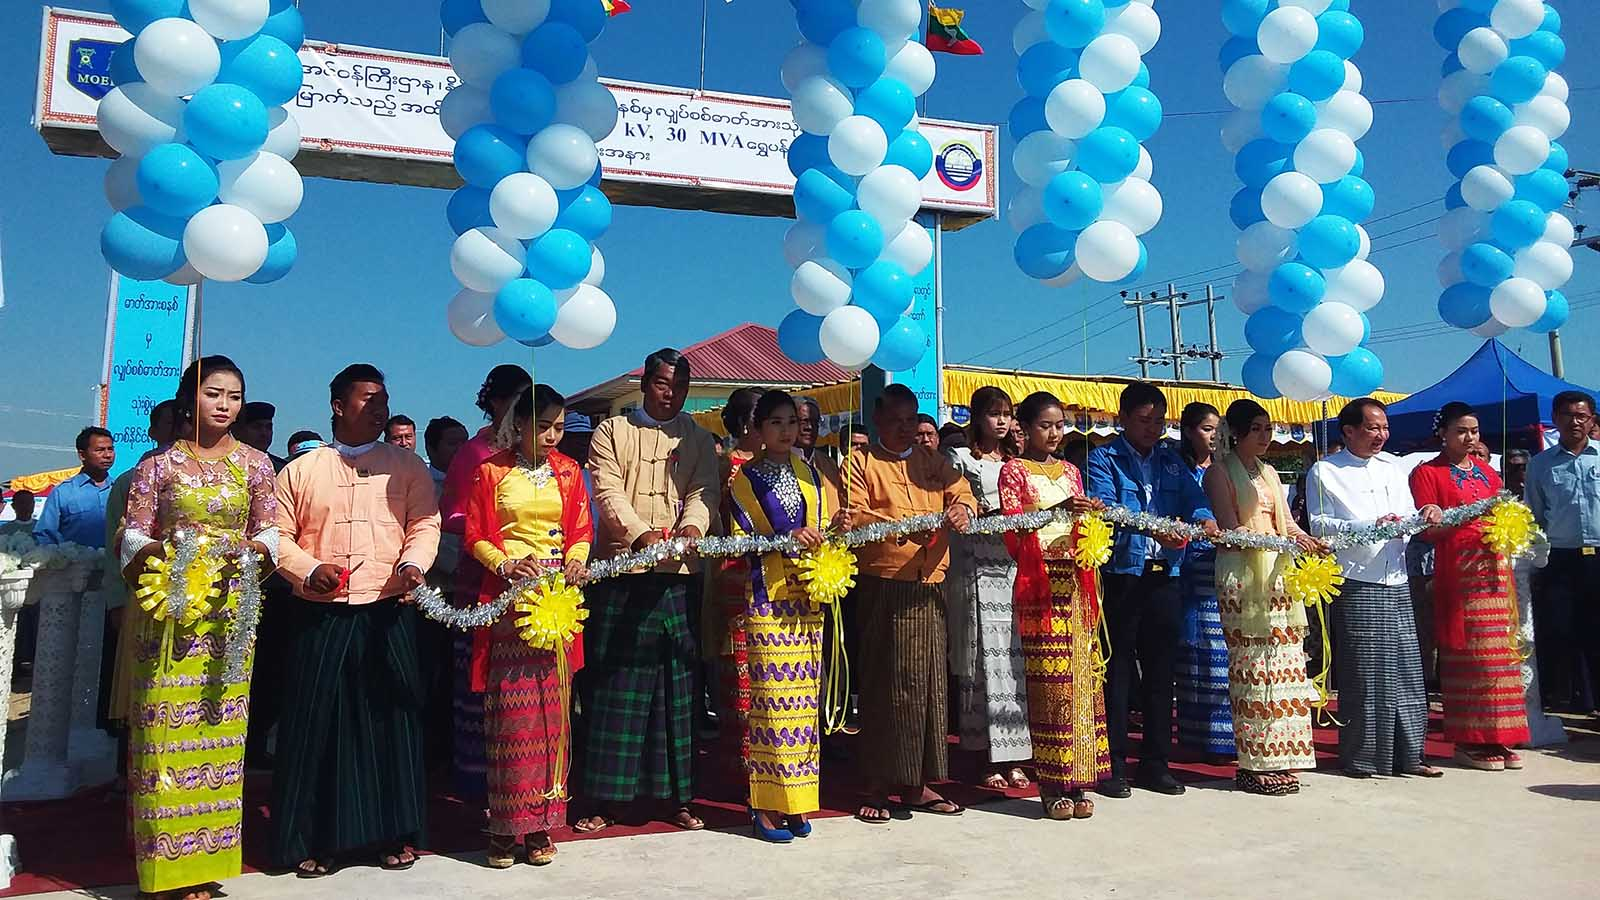 New 66/33KV 30MVA power substation in commission to mark 50% electrification in Myanmar